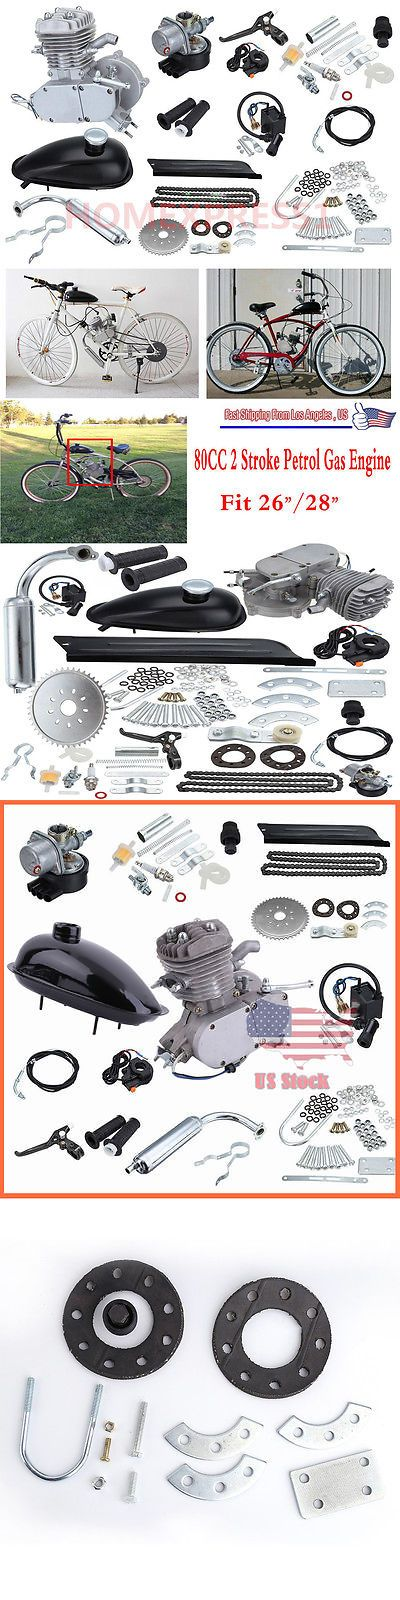 Gas Scooters 75211: 80Cc 2 Stroke Cdi Motorized Motor Engine Full Kit Fit 28 Bicycle Bike Sliver Hl -> BUY IT NOW ONLY: $97.95 on eBay!